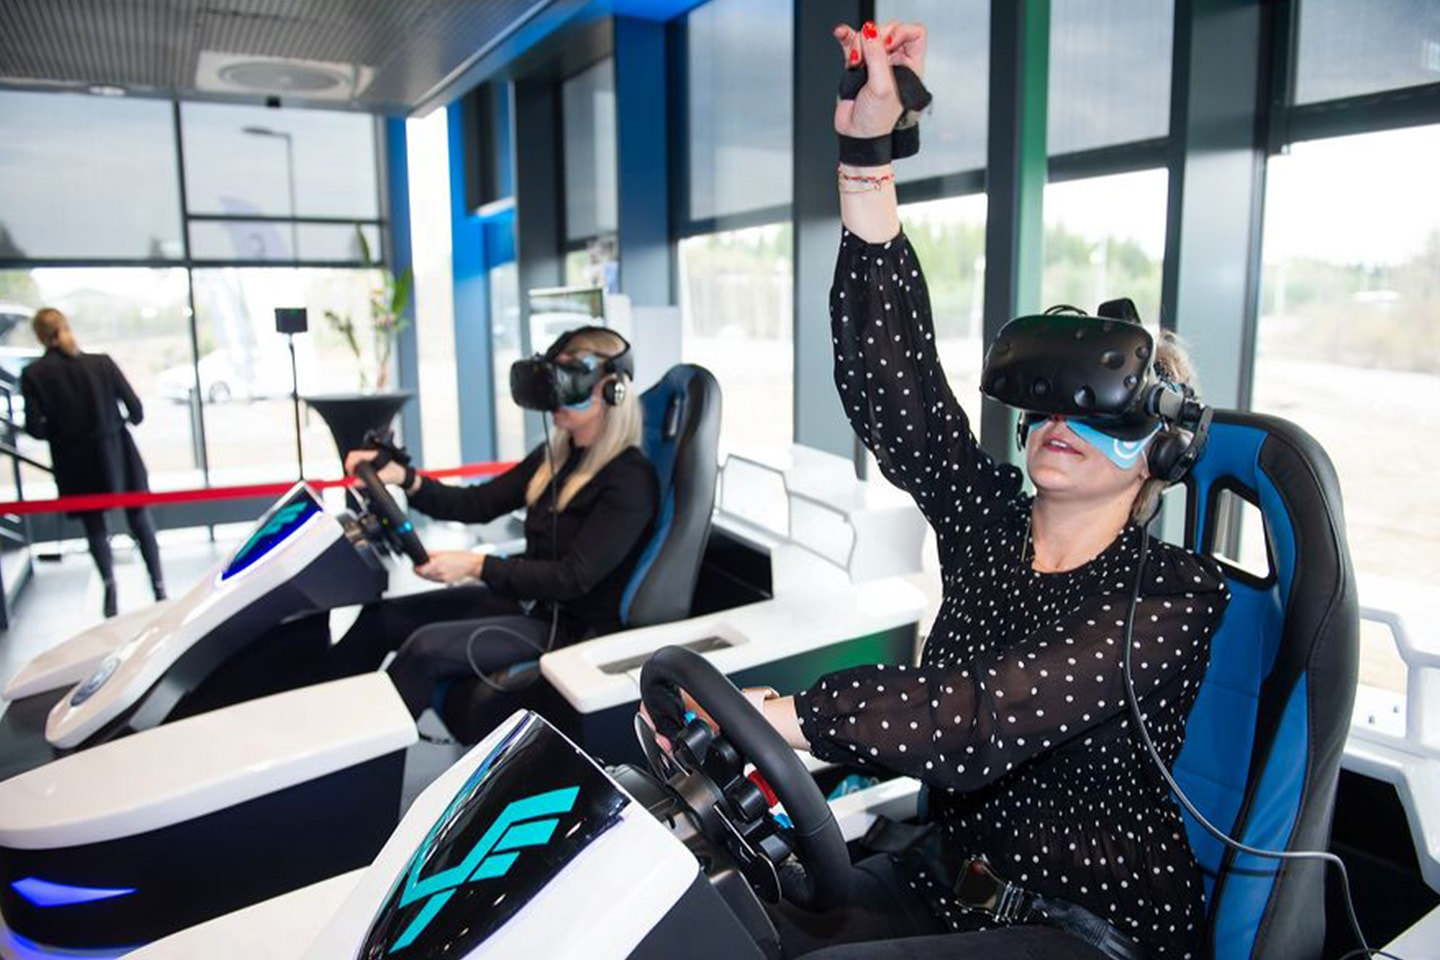 Vindtunnel, AR-klatrevegg og VR-simulator hos Modern Activity Center